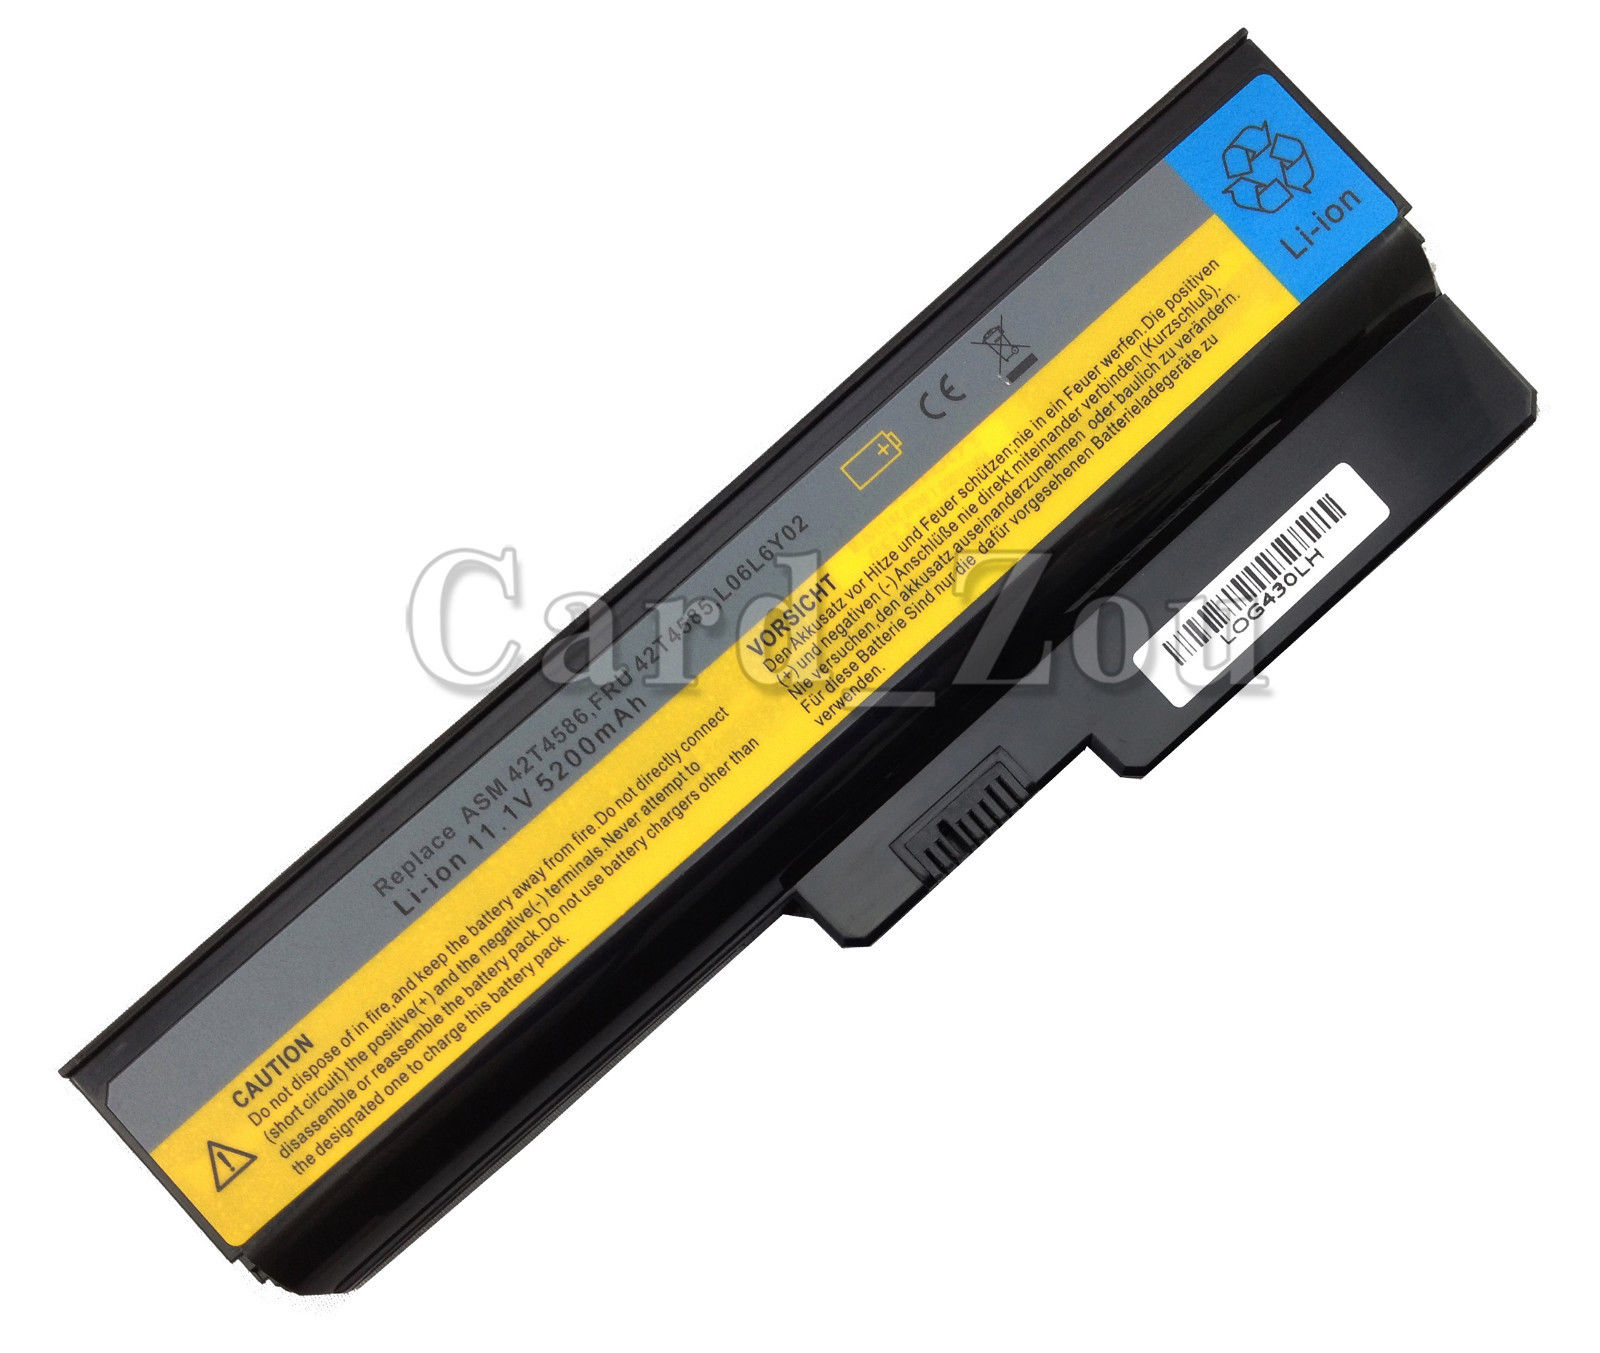 Pin IBM Lenovo - Battery IBM Lenovo G430 G450 B460